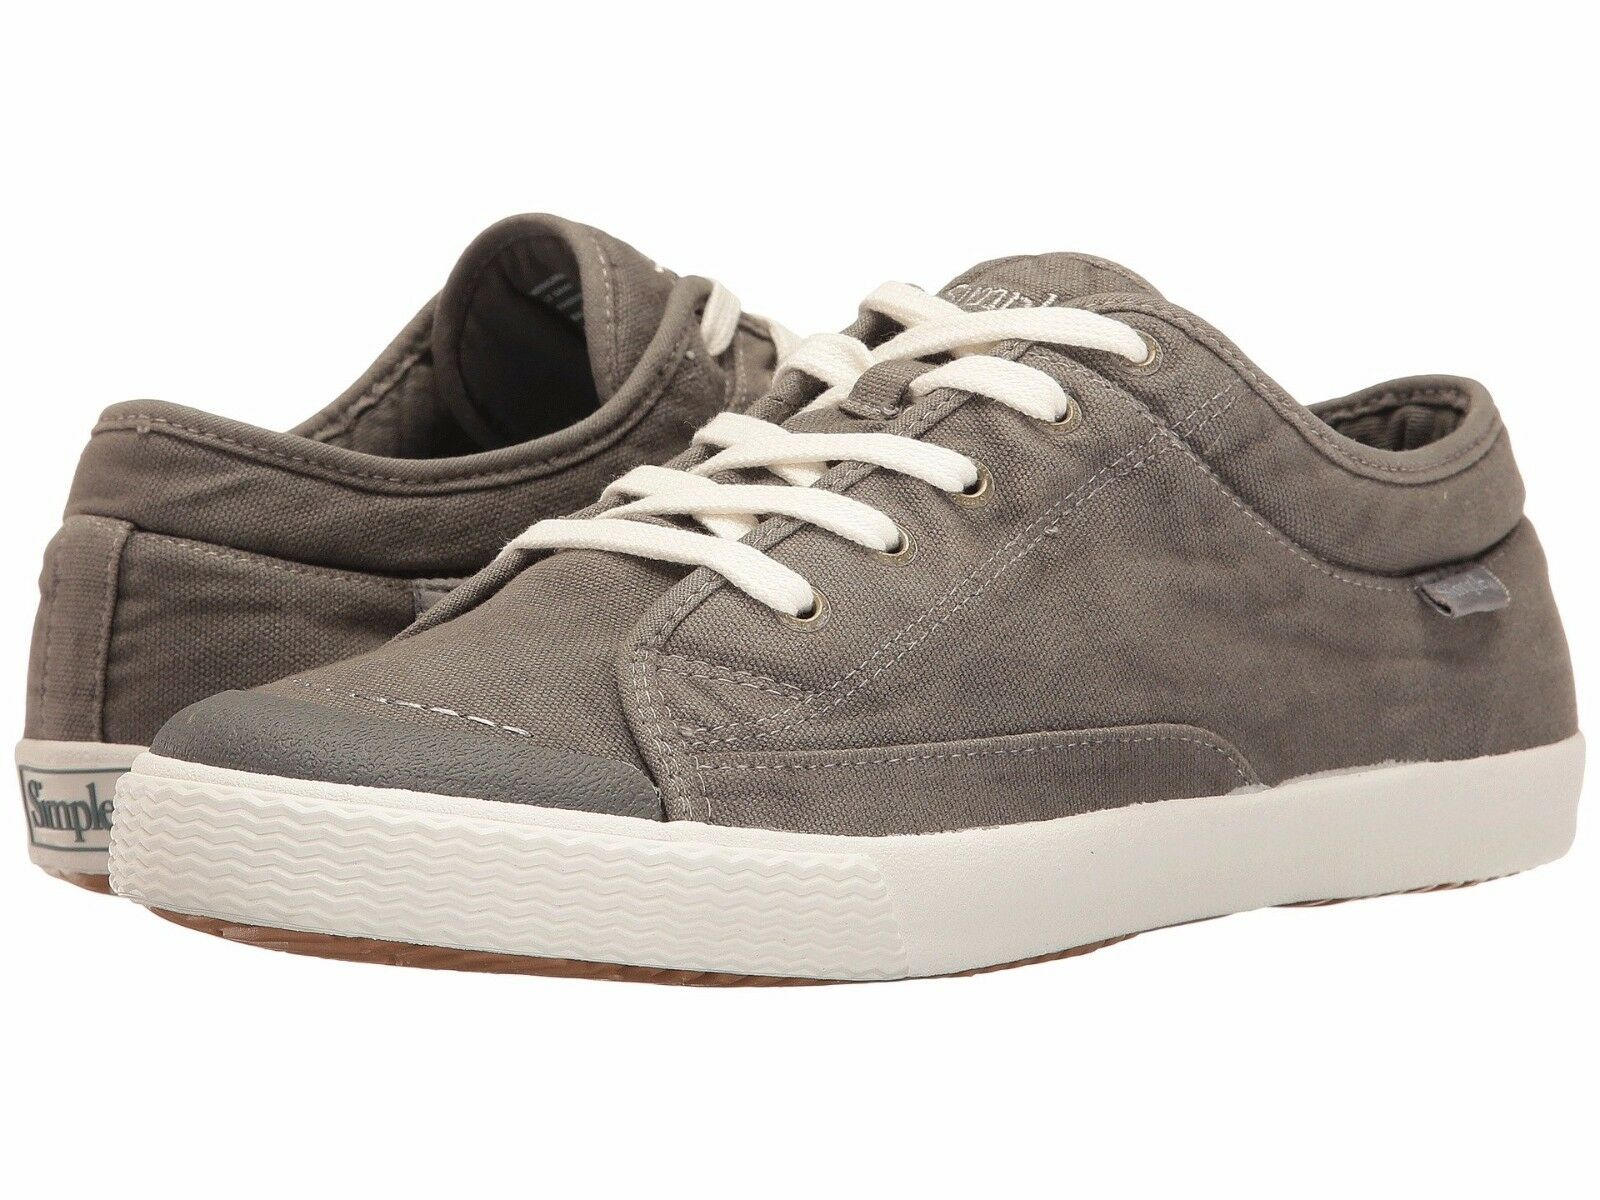 Simple New Men's Boy Sneaker Grey Wingman Trainers Skater Casual Fashions Shoes